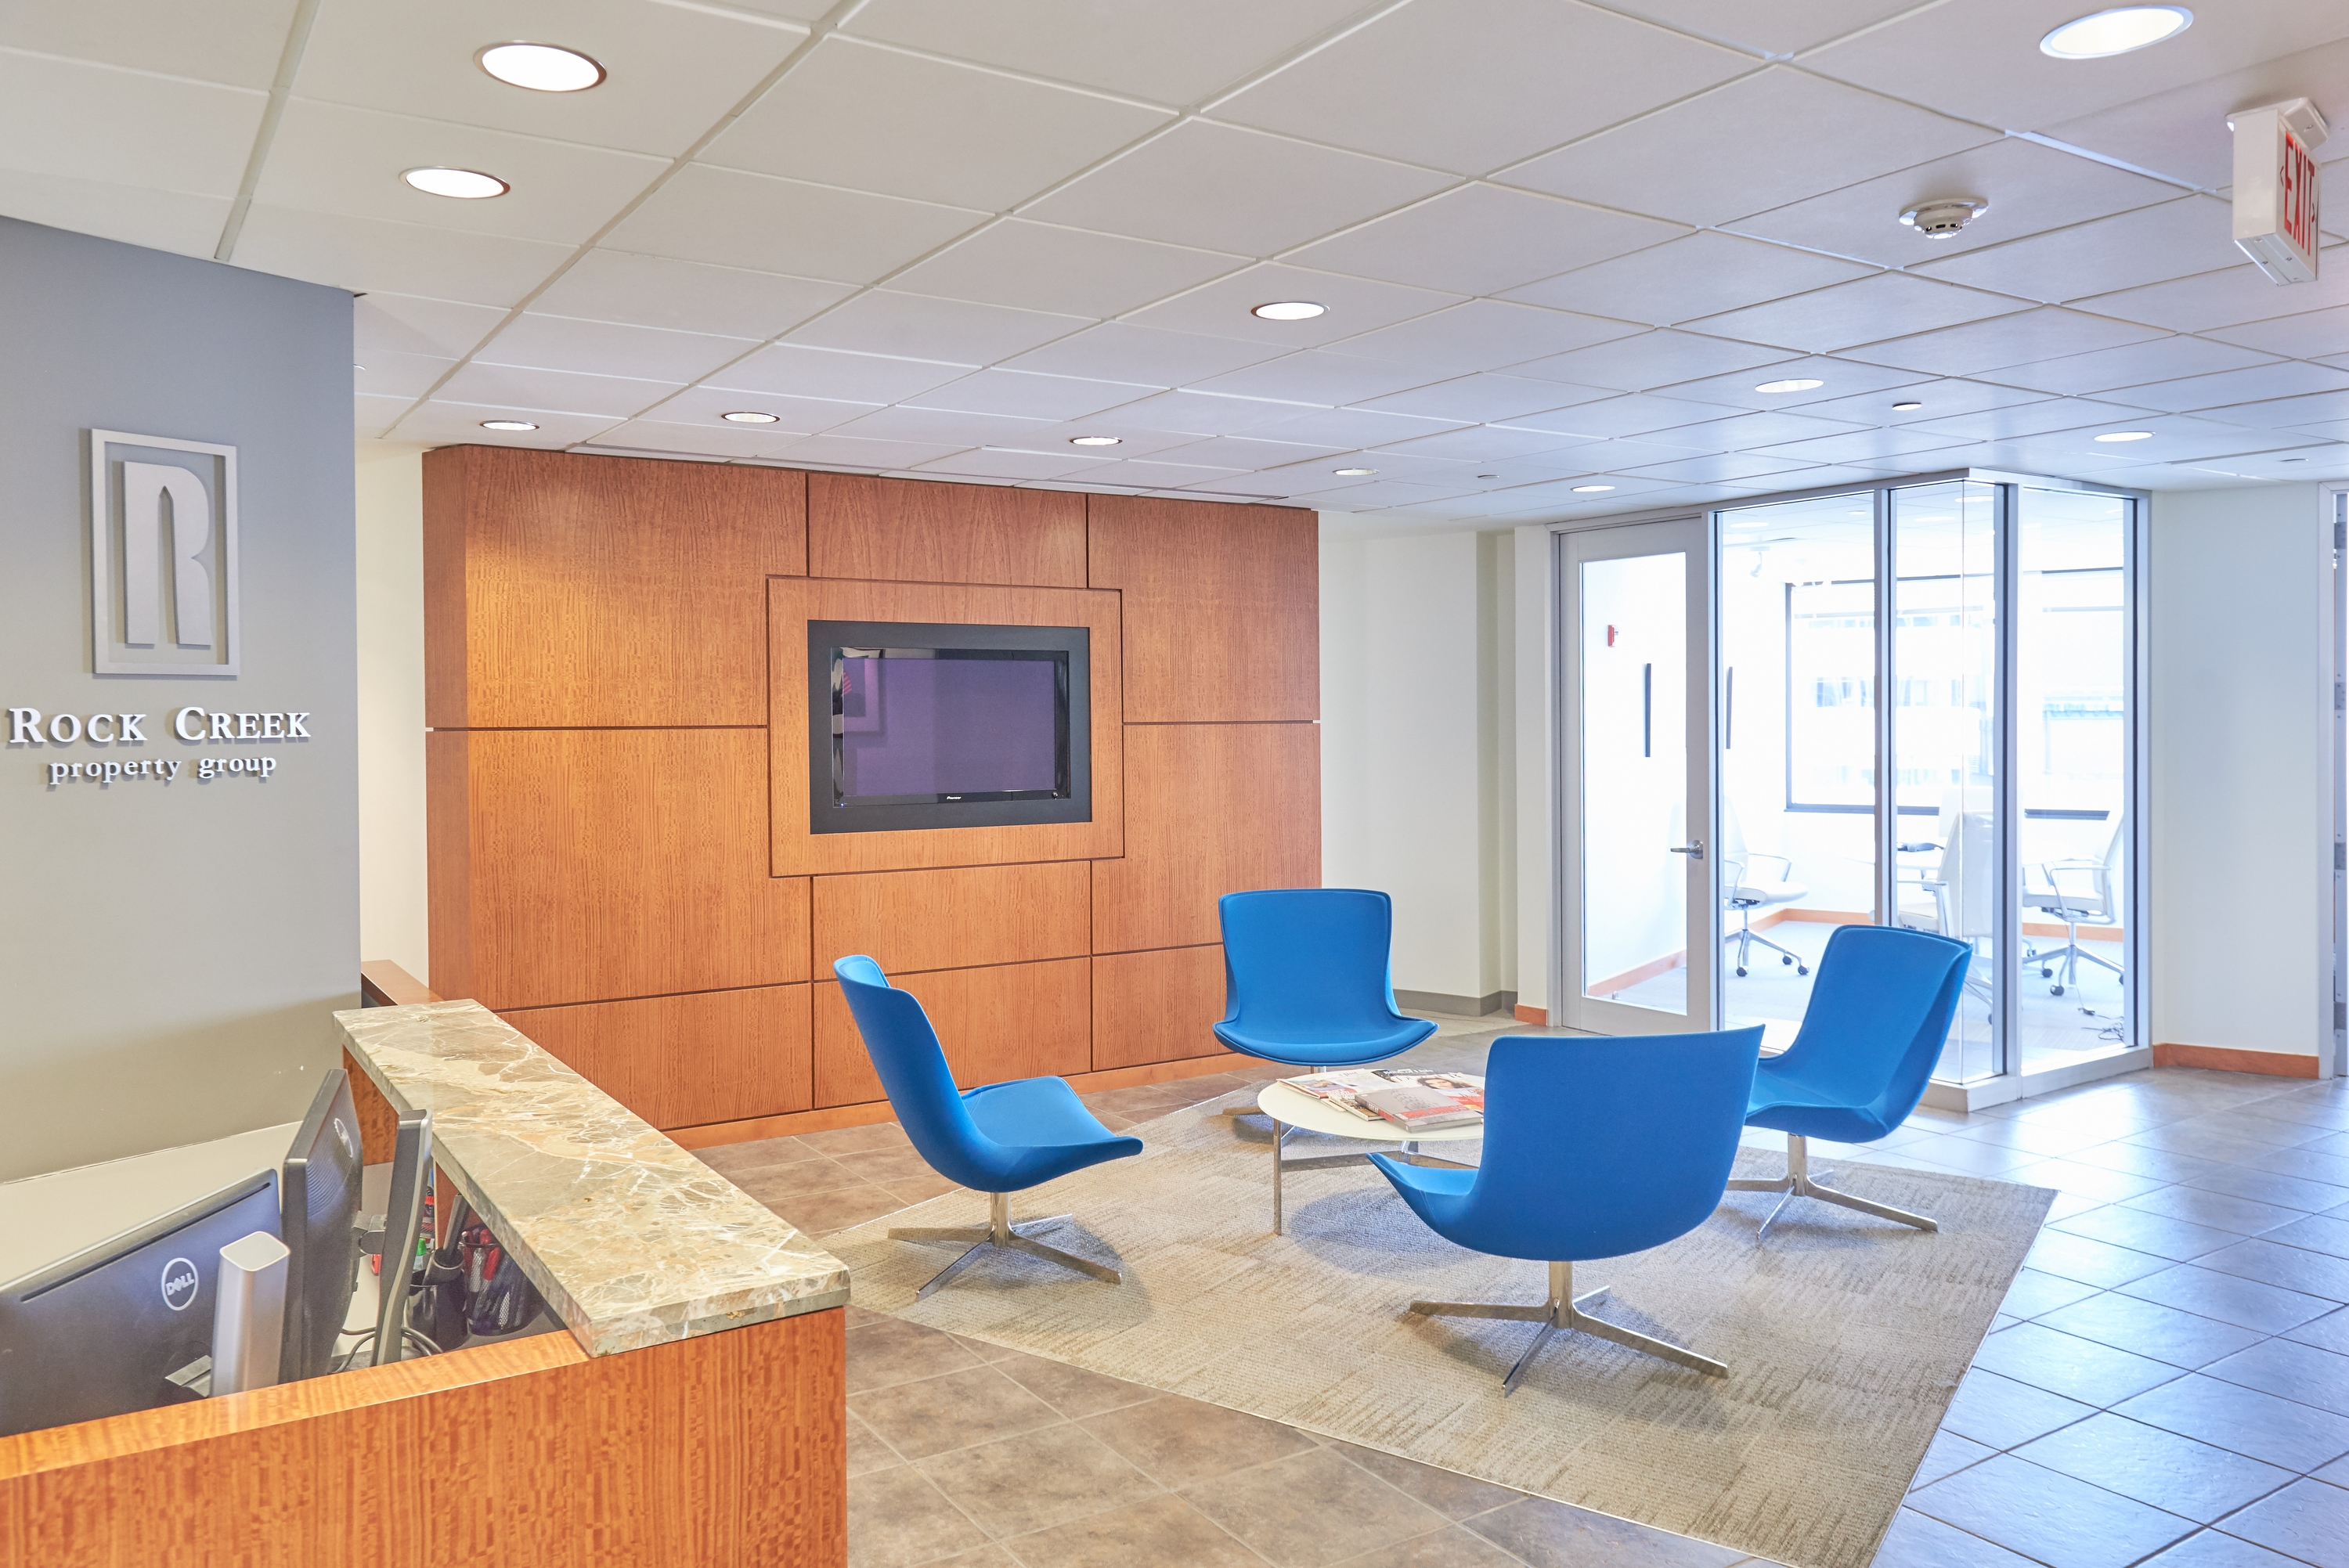 Let Us Help You Photograph Your Office Space